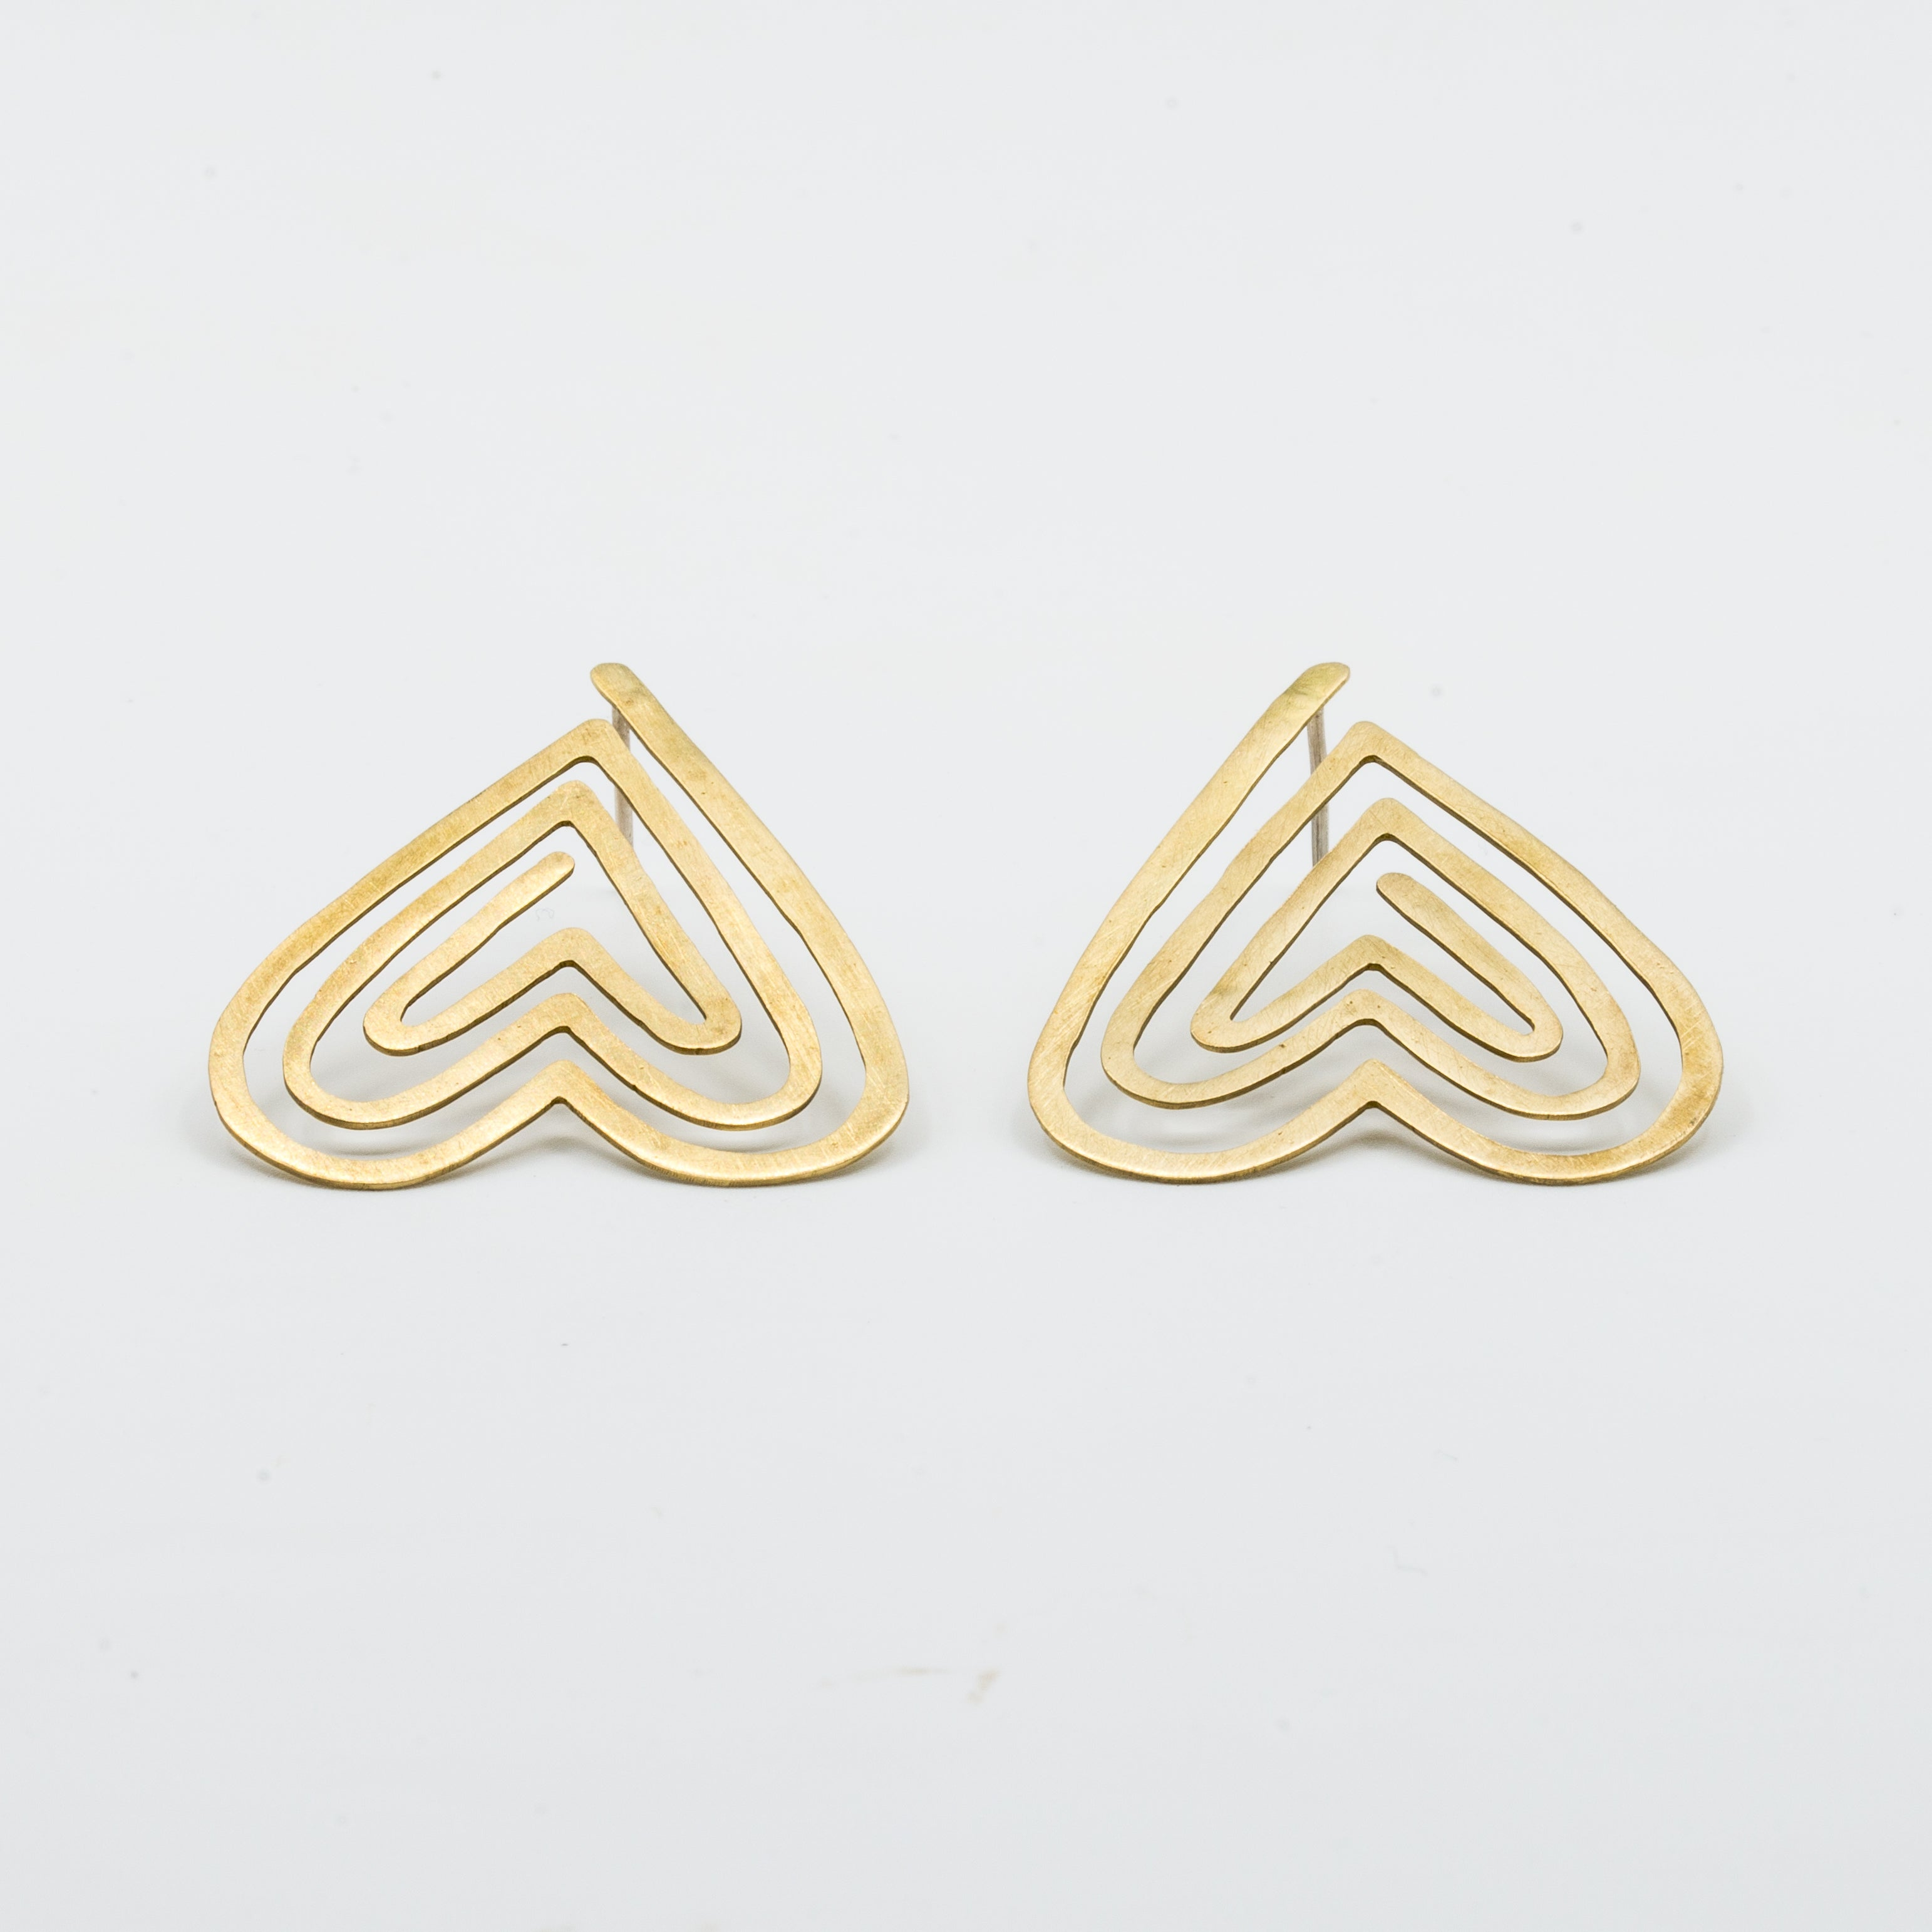 angled view heart shaped stud earrings on white background